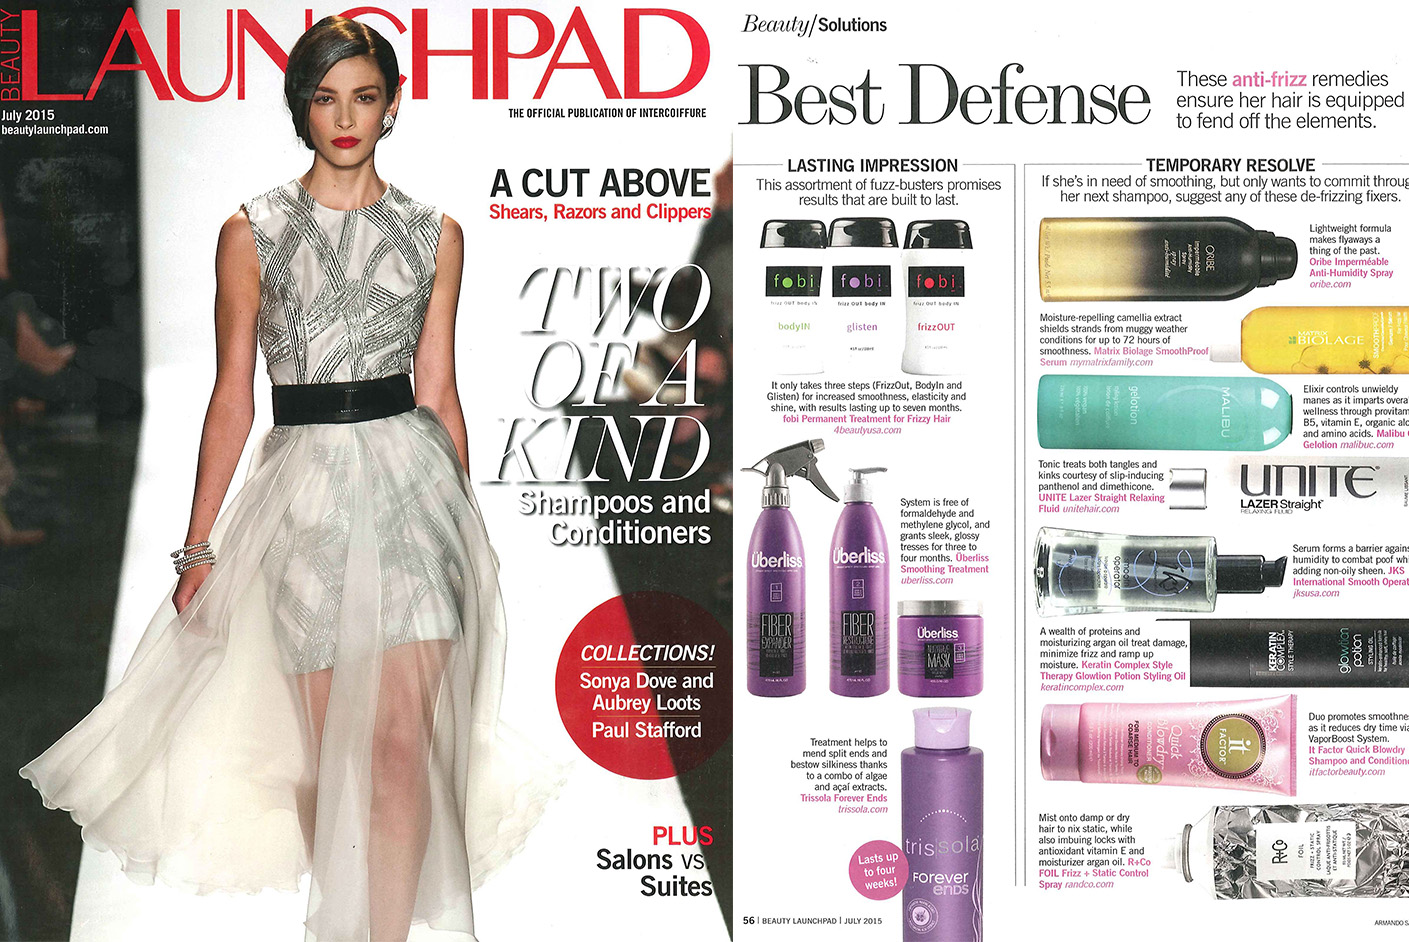 Matrix Haircare As Seen In LaunchPad Biolage June 2015 Full Spread